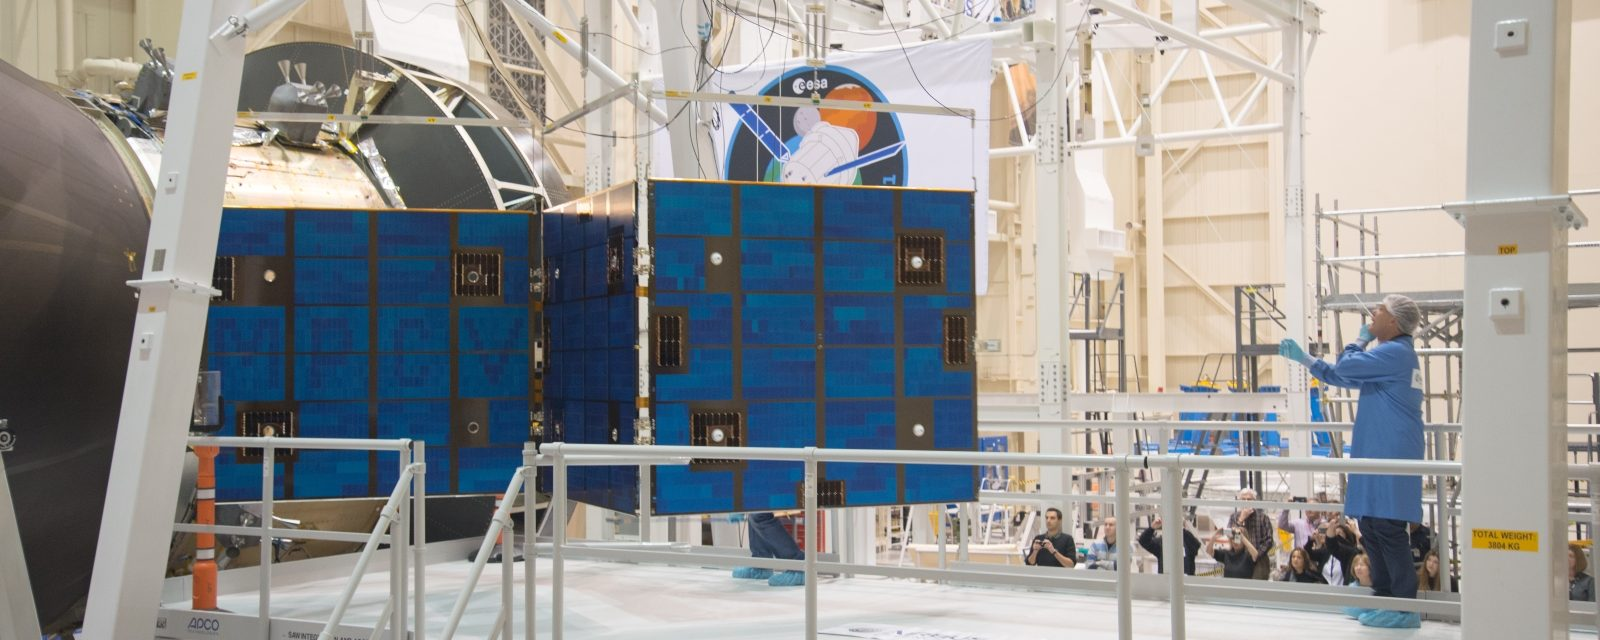 An Orion solar array panel at NASA's Plum Brook Station testing facility in Sandusky, Ohio.